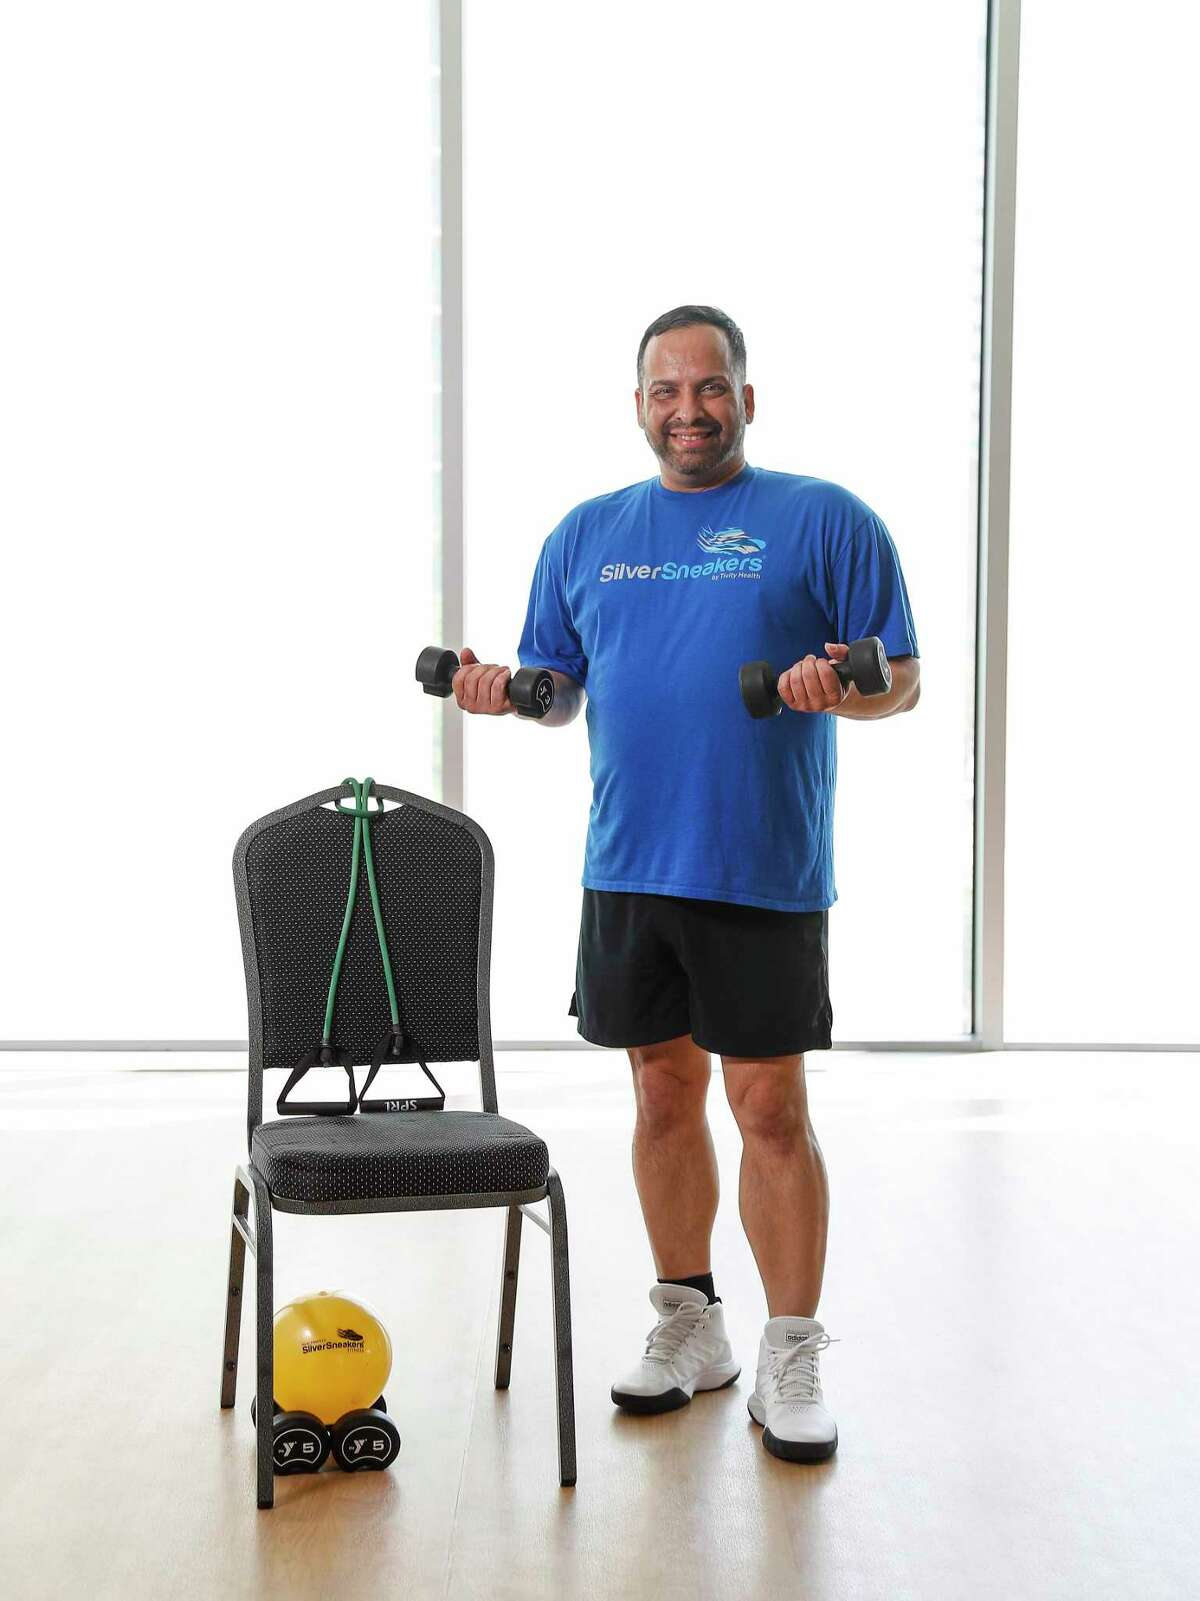 Eliot Perez, who was voted the top U.S. fitness instructor for Silver Sneakers, a program that serves only the 70+ population, this year, poses for a photo at the Tellepson Family Downtown YMCA, Saturday, June 13, 2020, in Houston.